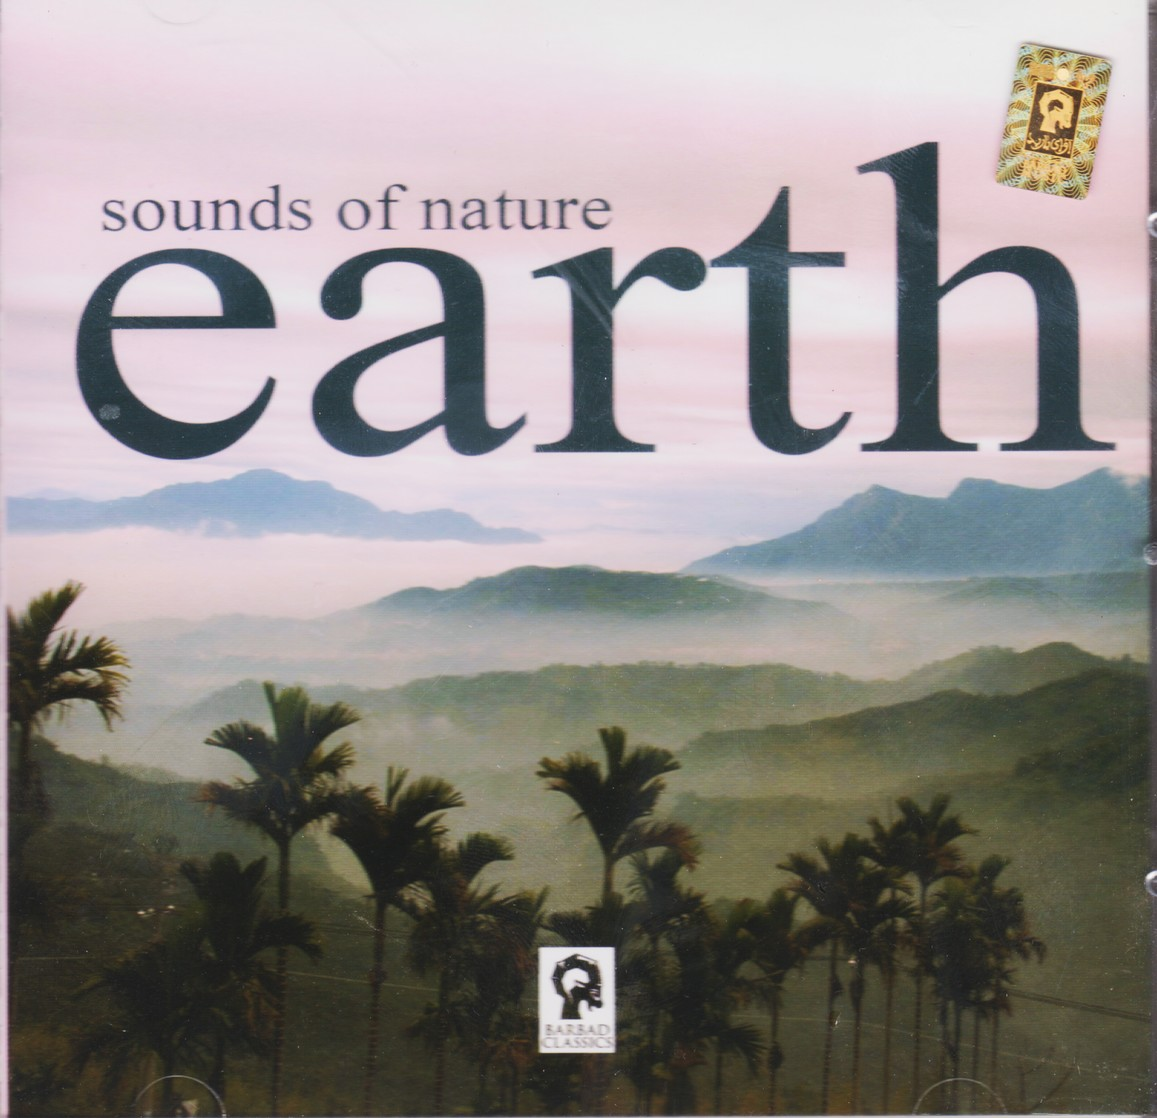 sounds of nature:earth